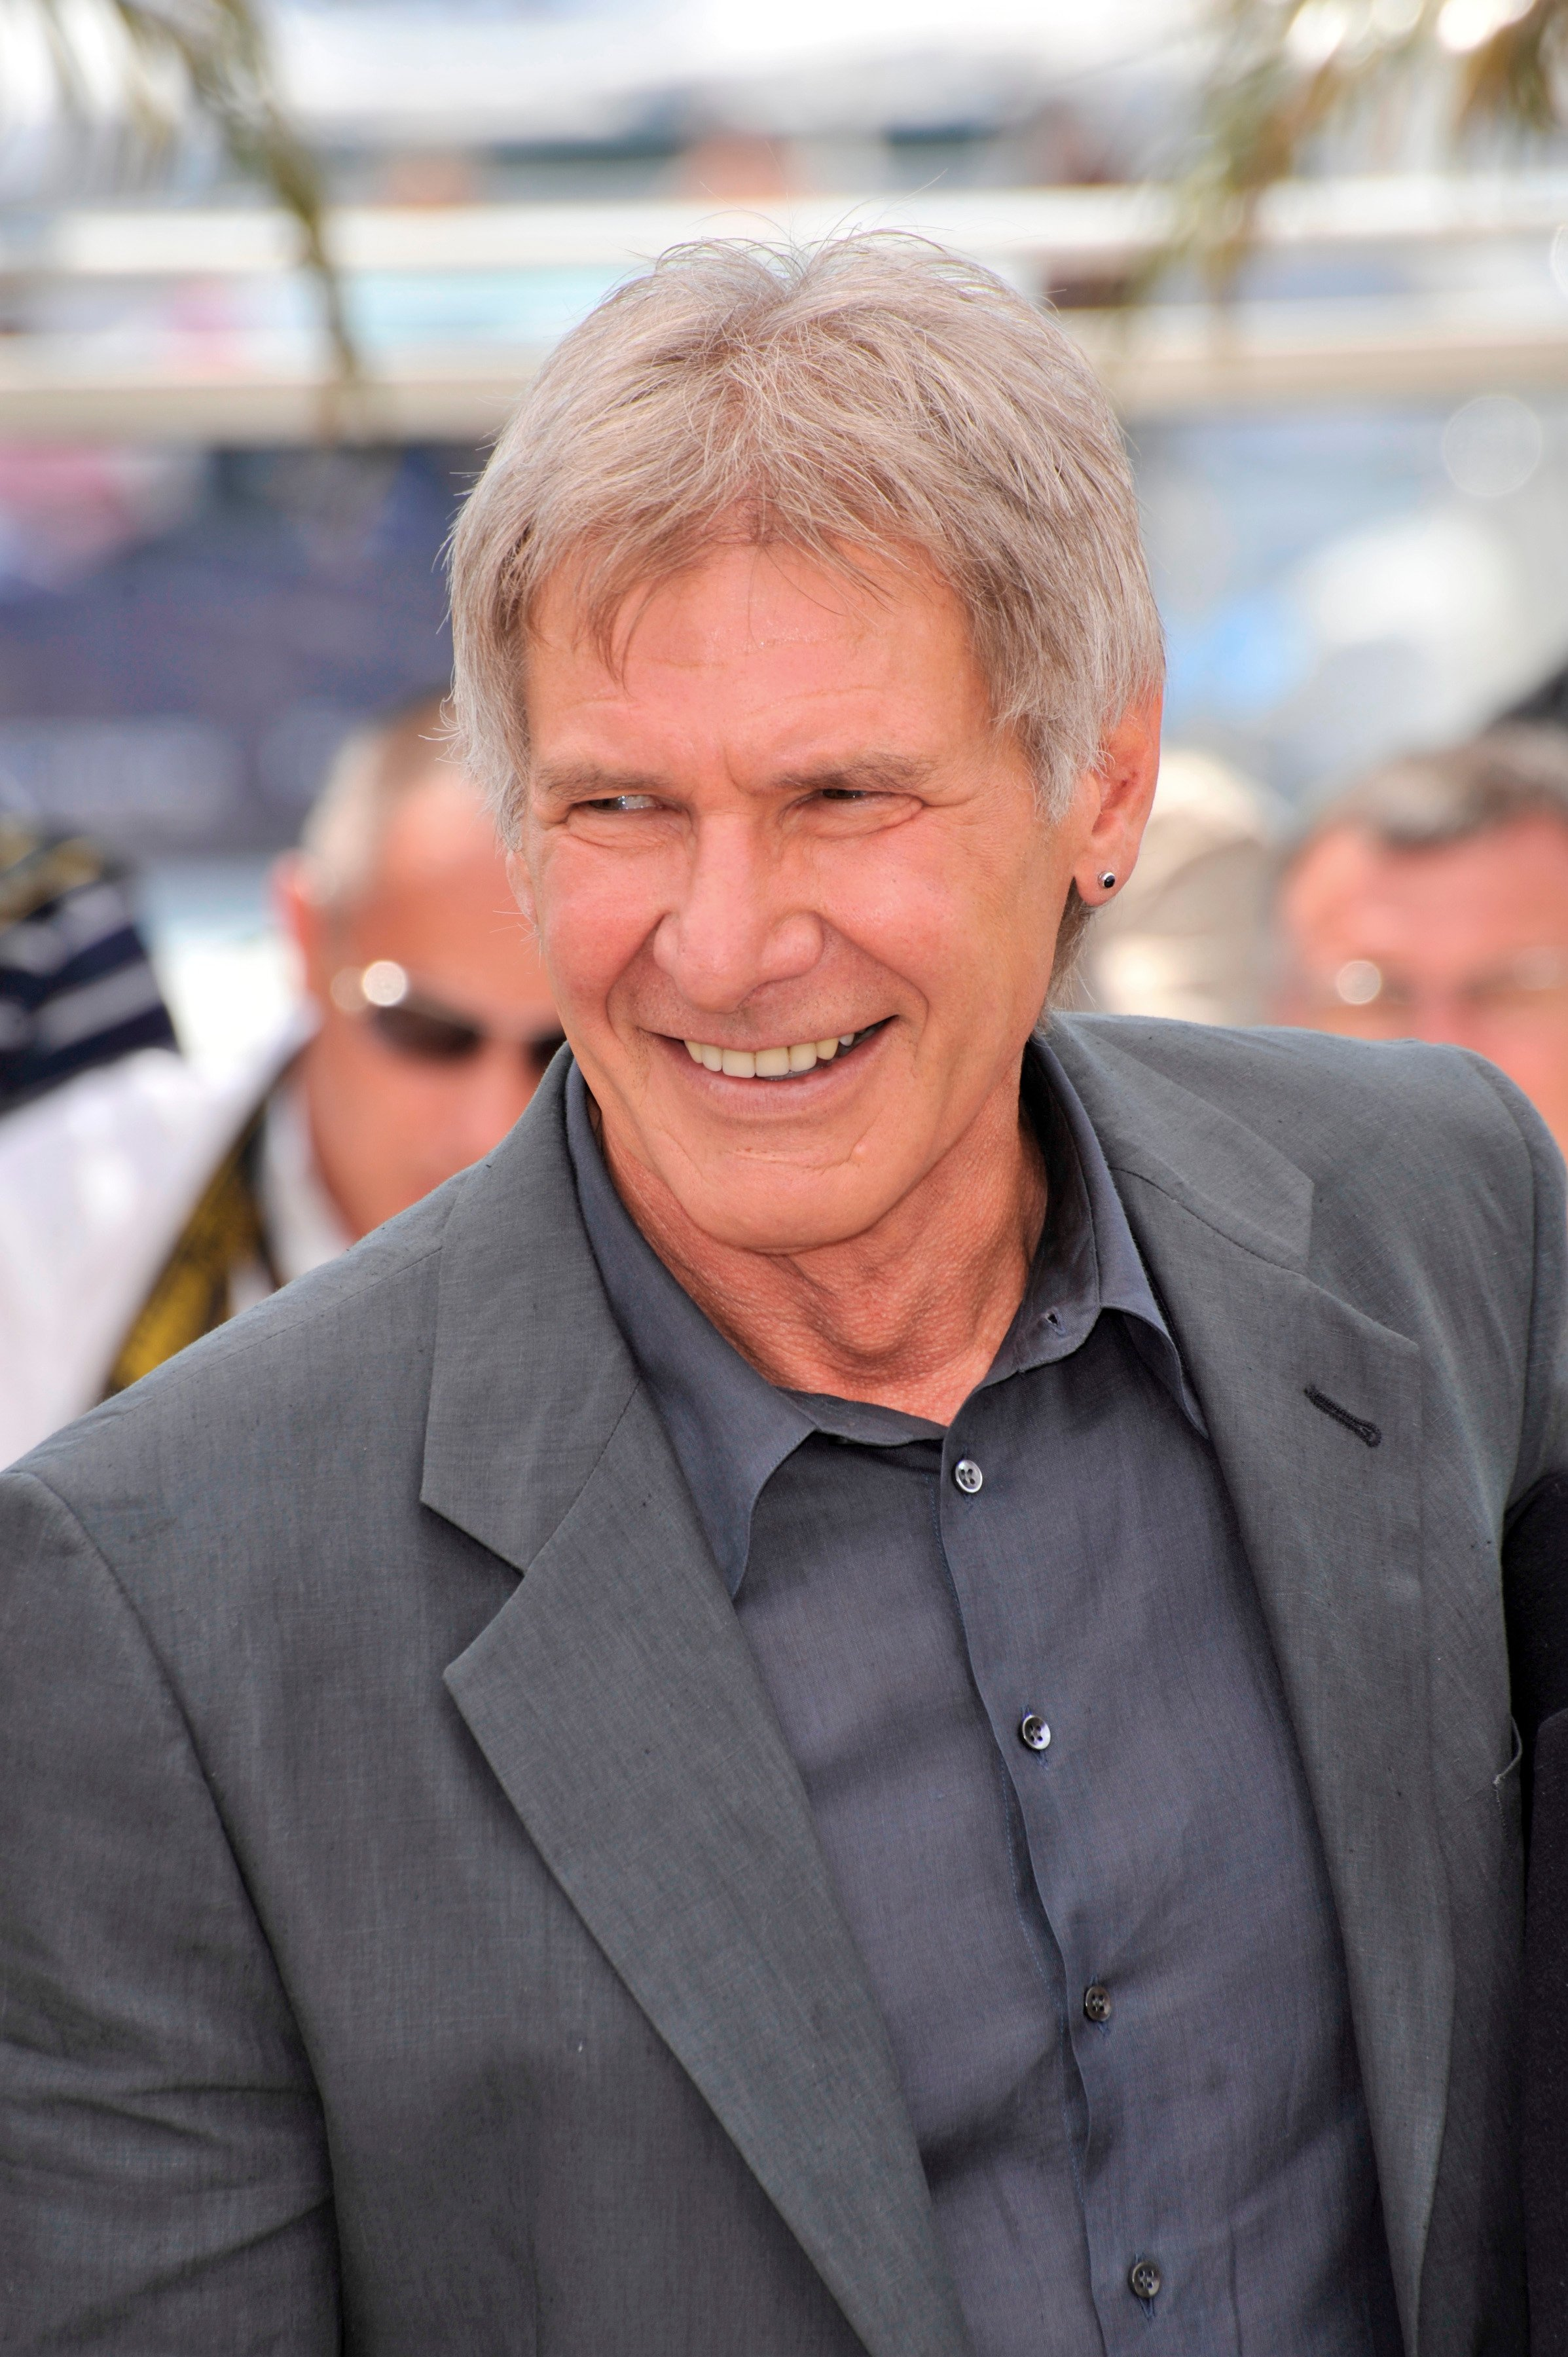 """Harrison Ford at photocall for """"Indiana Jones and the Kingdom of the Crystal Skull"""" at the 61st Annual Cannes Film Festival on May 18, 2008 Cannes, France   Photo: Shutterstock"""